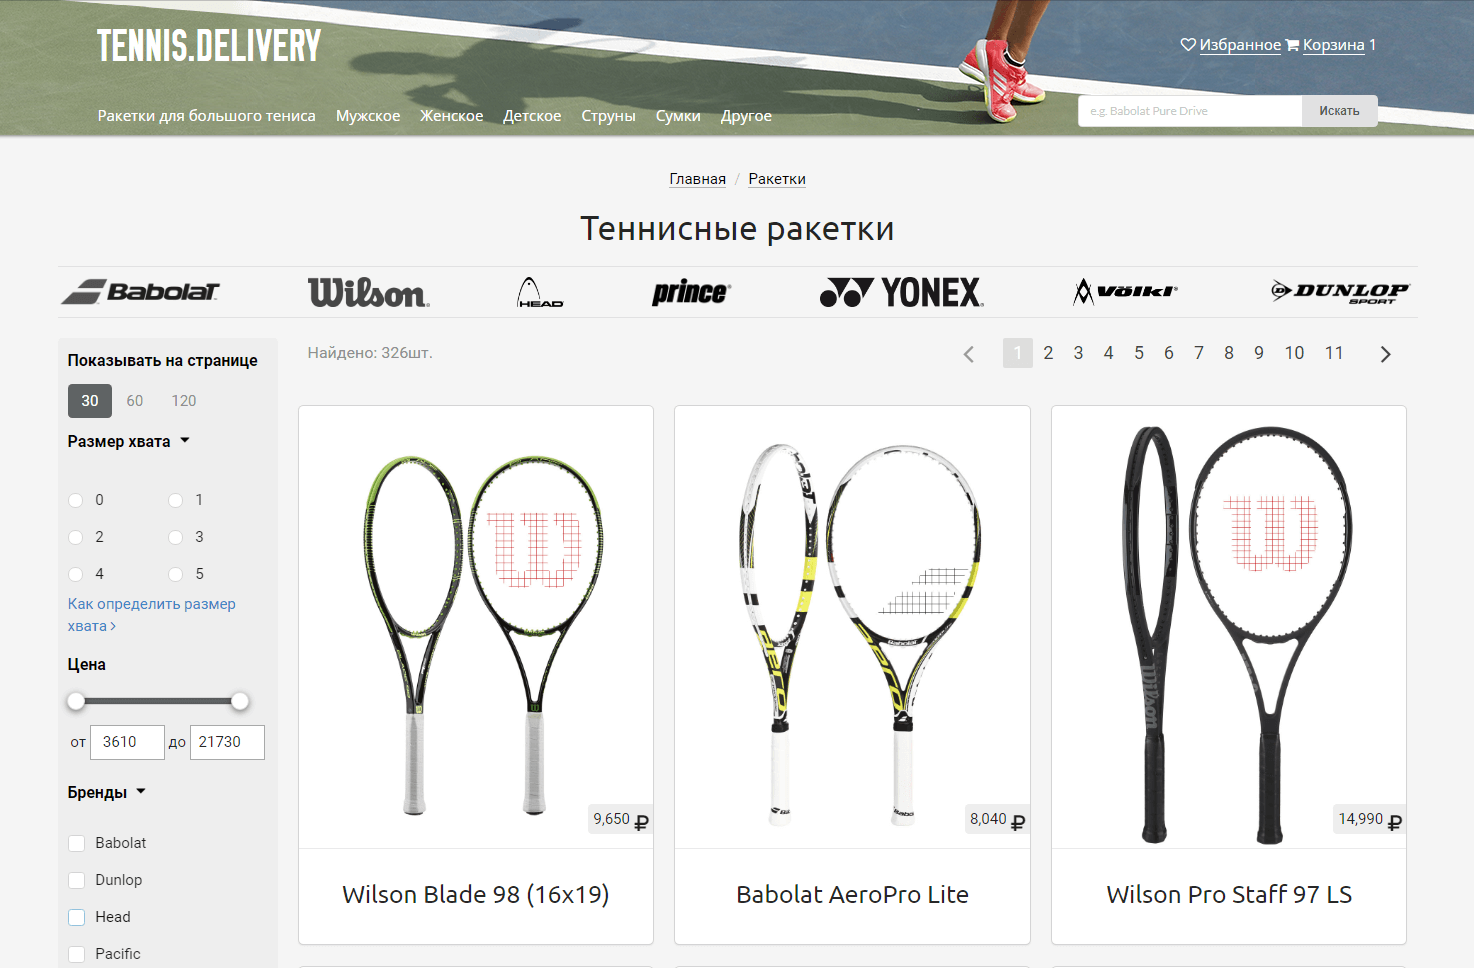 tennis.delivery category shot